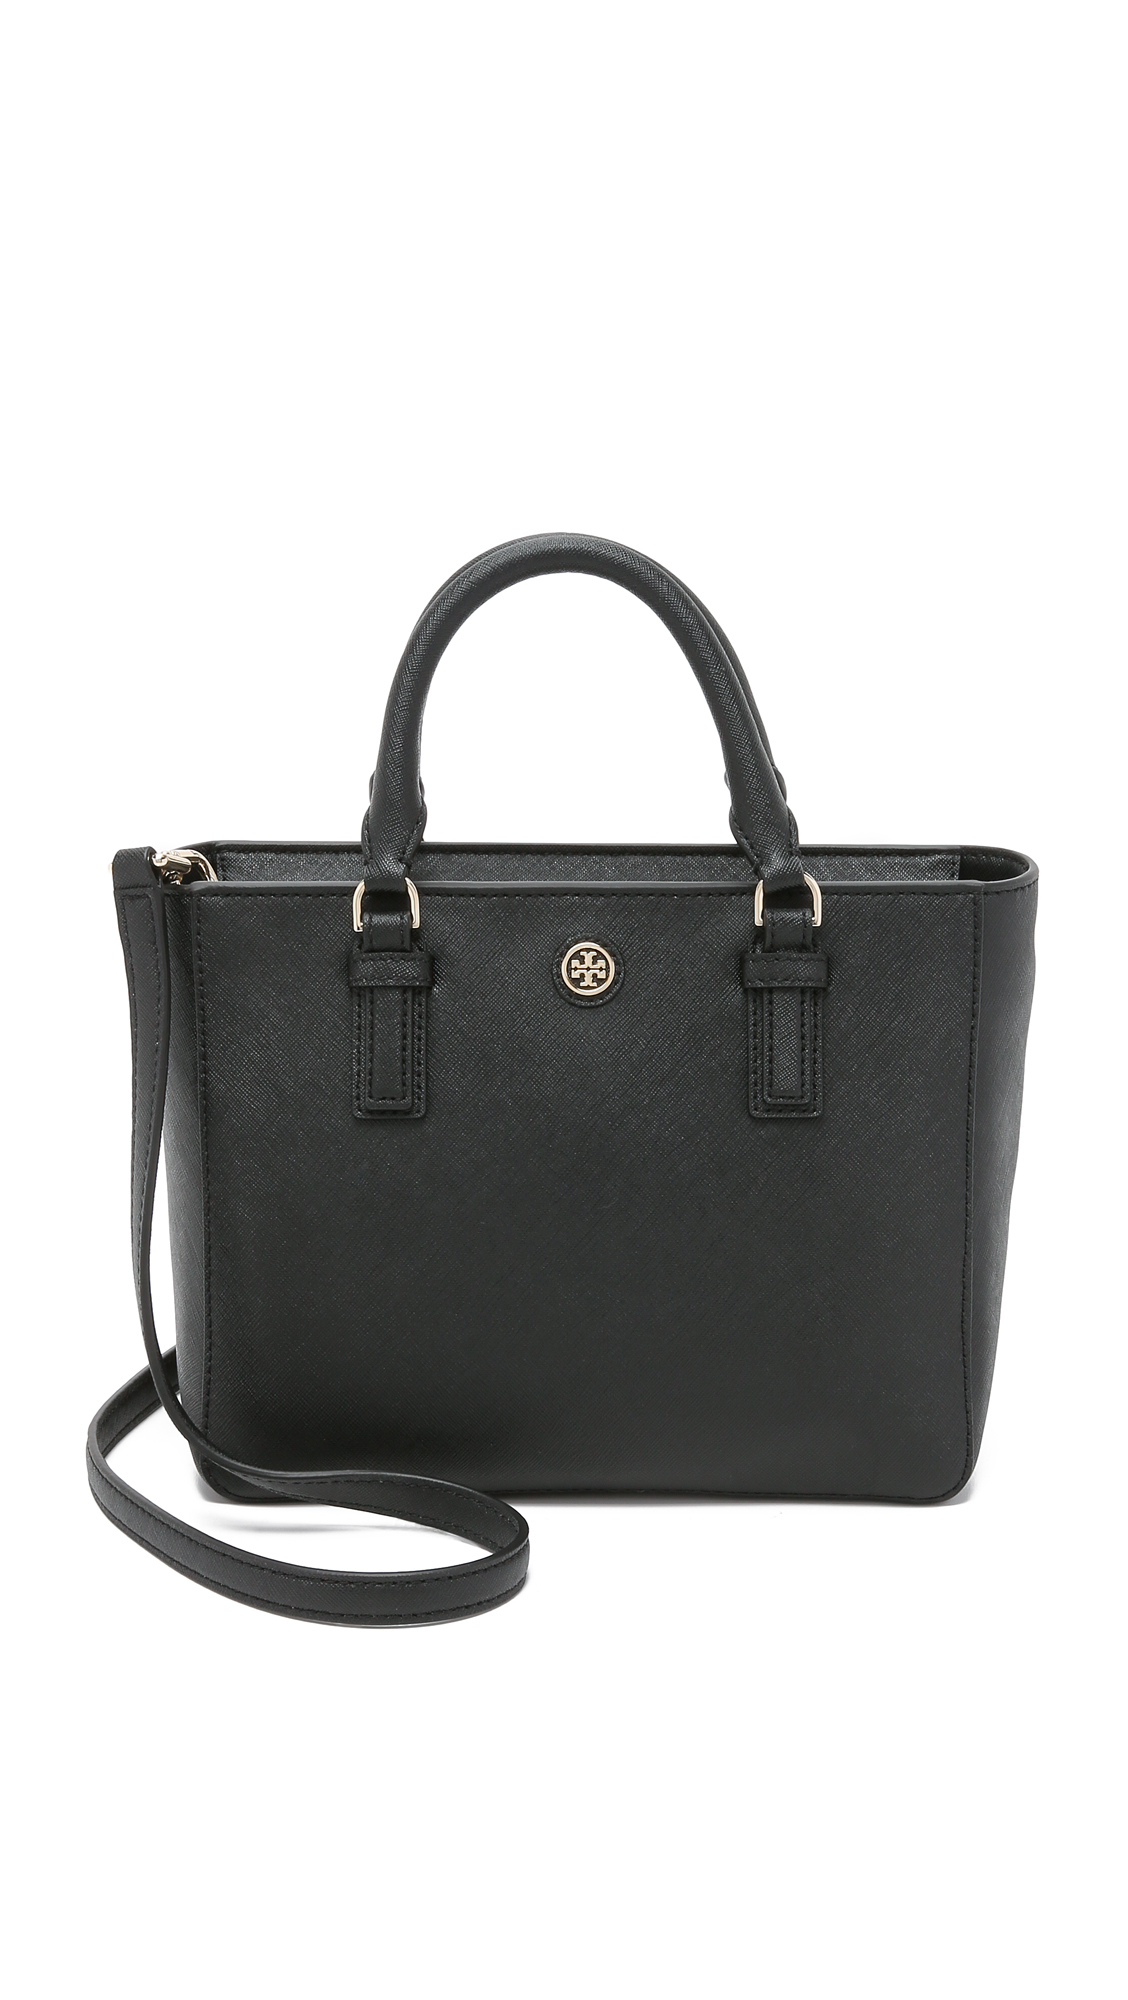 7aa15d6f132a Lyst - Tory Burch Robinson Mini Square Tote - Black in Black